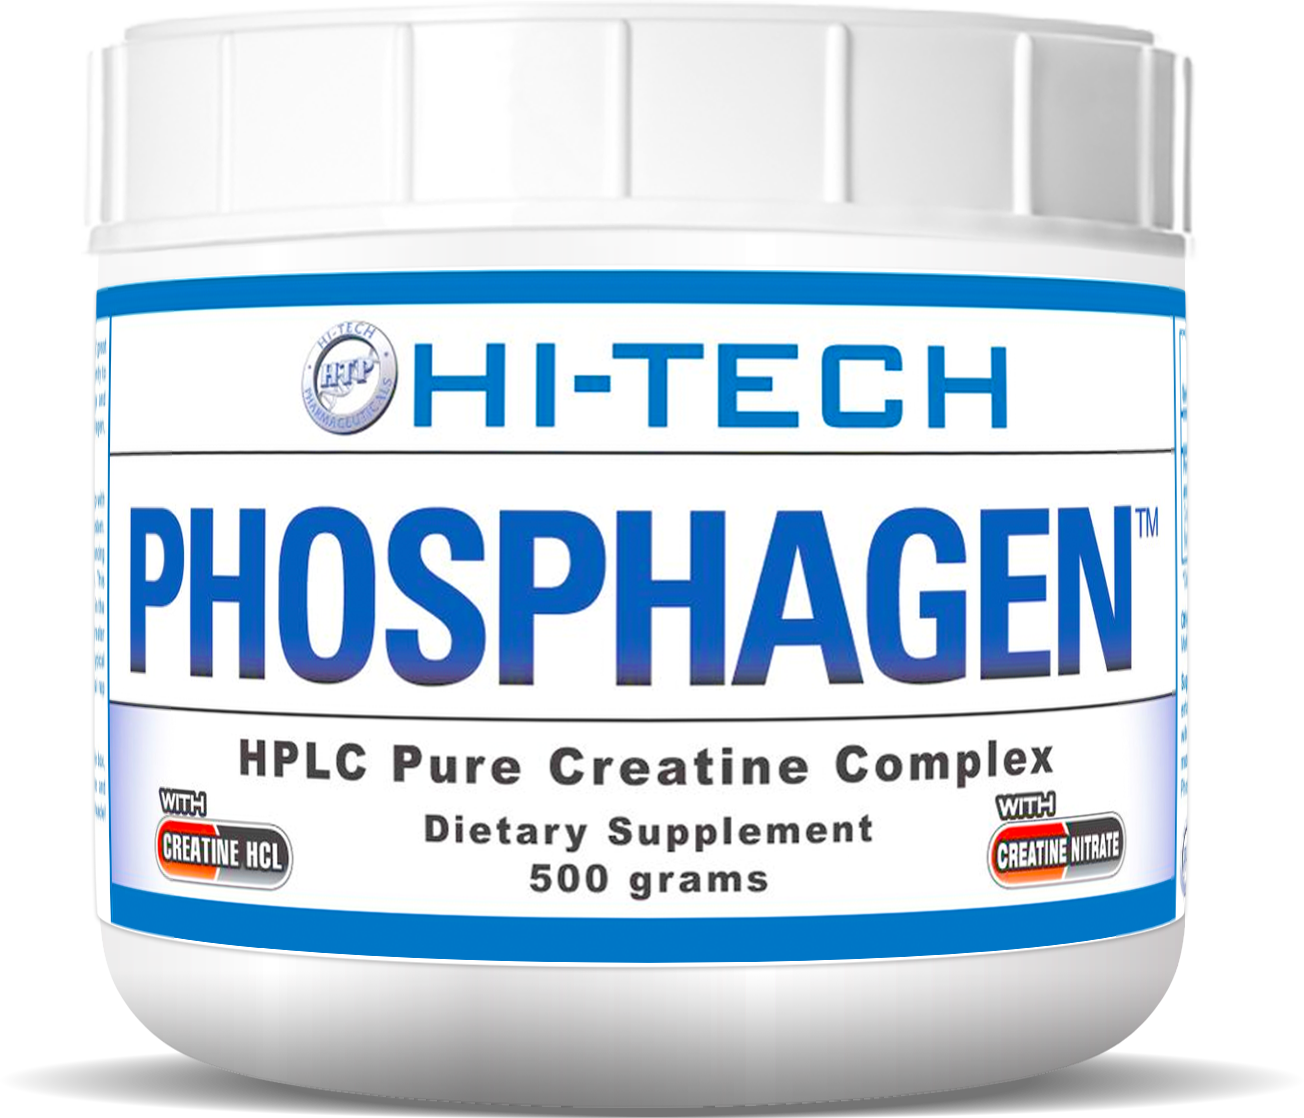 Creatine Learn Compare Products And Save At Priceplow Rsp Monohydrate 500 Gram Hi Tech Pharmaceuticals Phosphagen